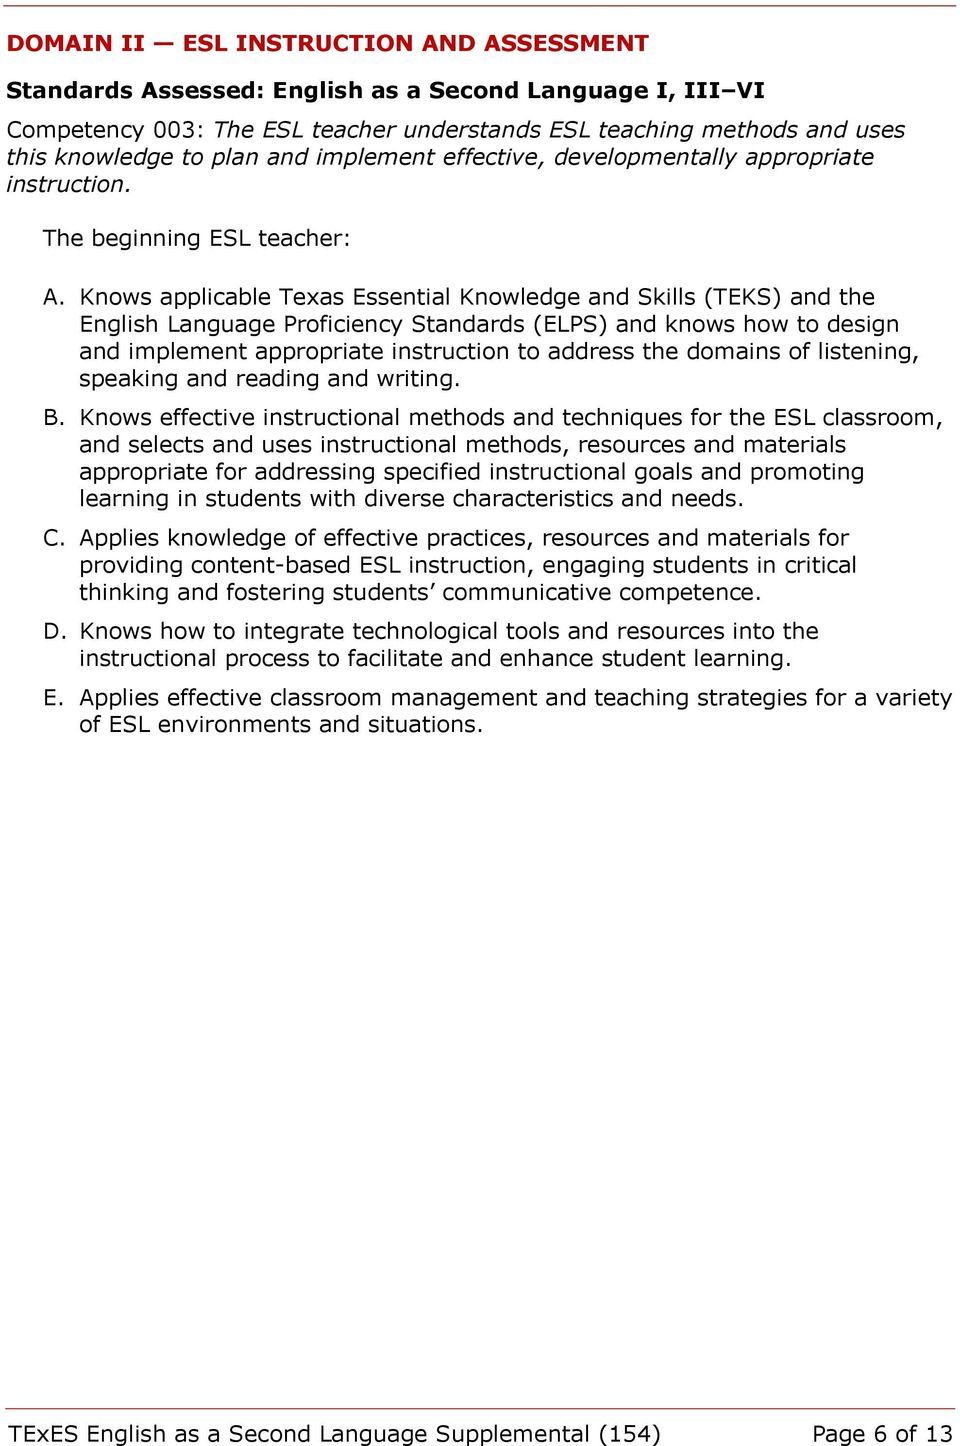 Knows applicable Texas Essential Knowledge and Skills (TEKS) and the English Language Proficiency Standards (ELPS) and knows how to design and implement appropriate instruction to address the domains